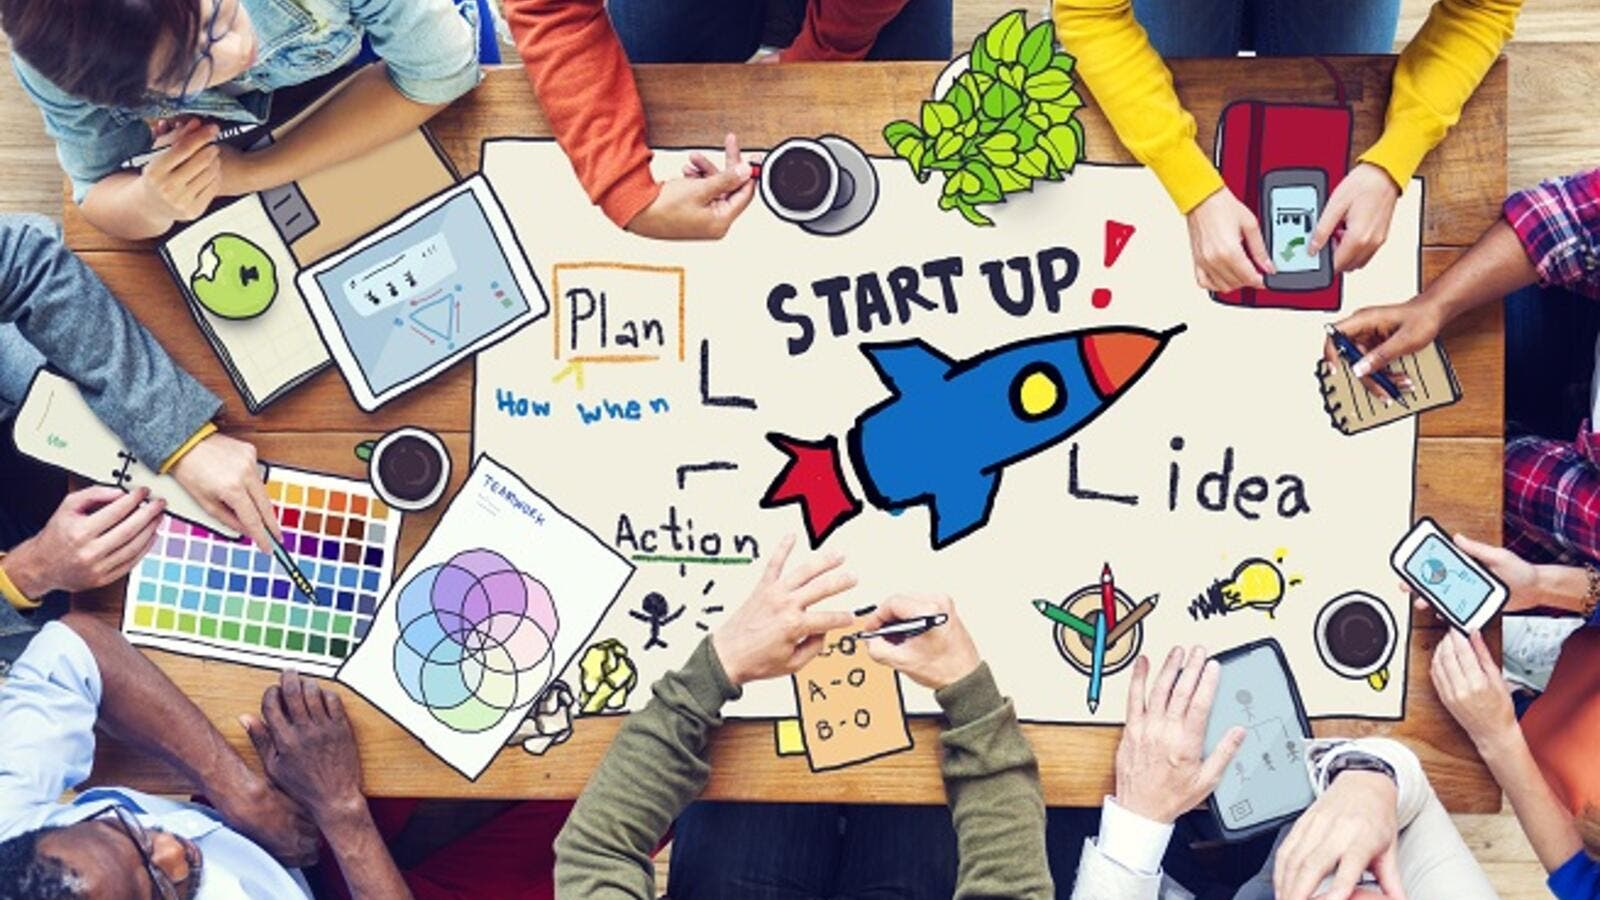 UAE's thriving startup industry attracts global VCs and investors. (Shutterstock)